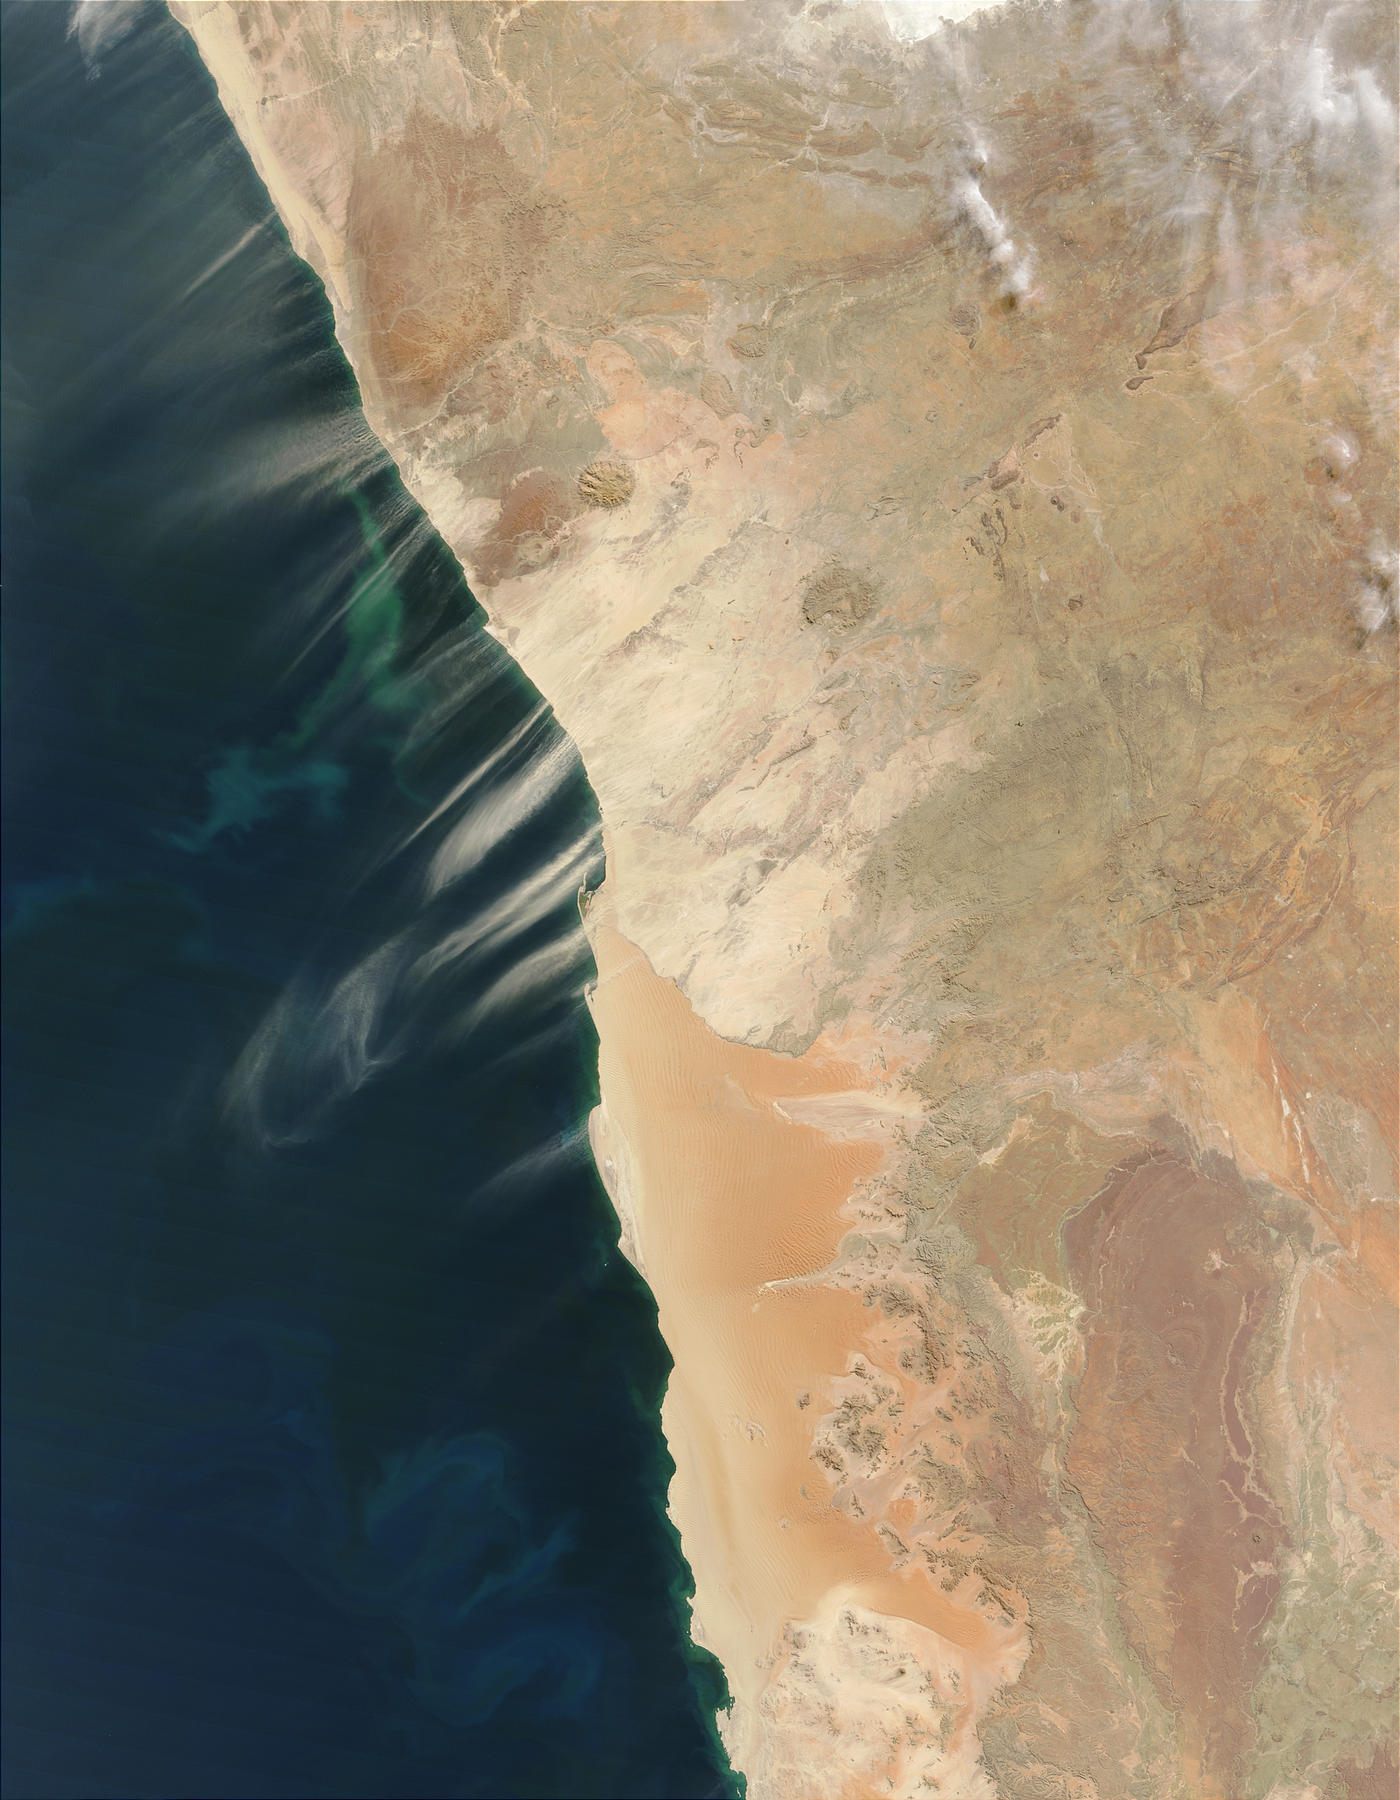 Dust plumes and phytoplankton bloom off Namibia - related image preview